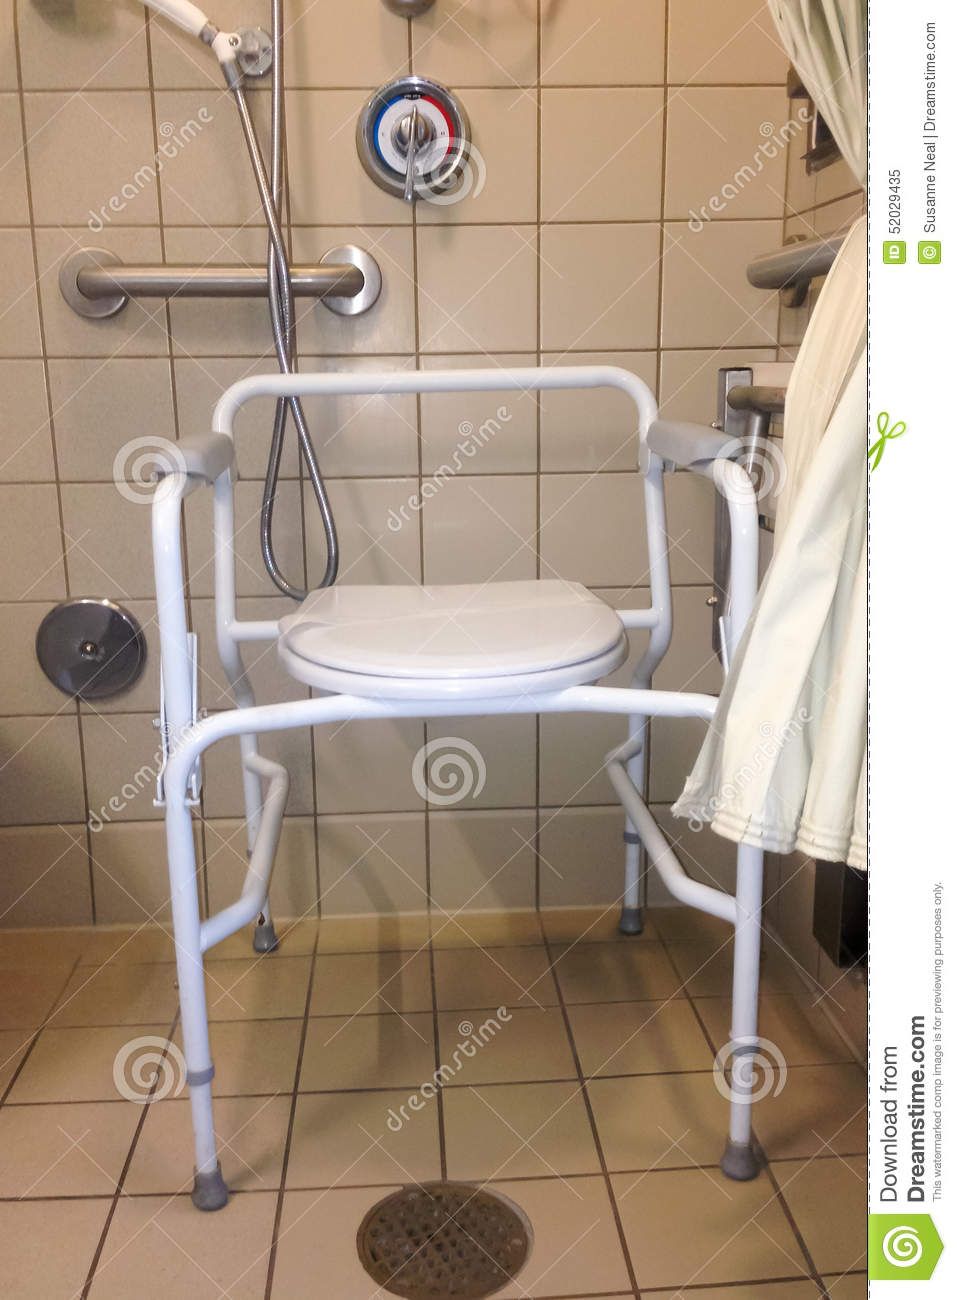 Hospital Shower Stall With Bedside Commode Stock Image